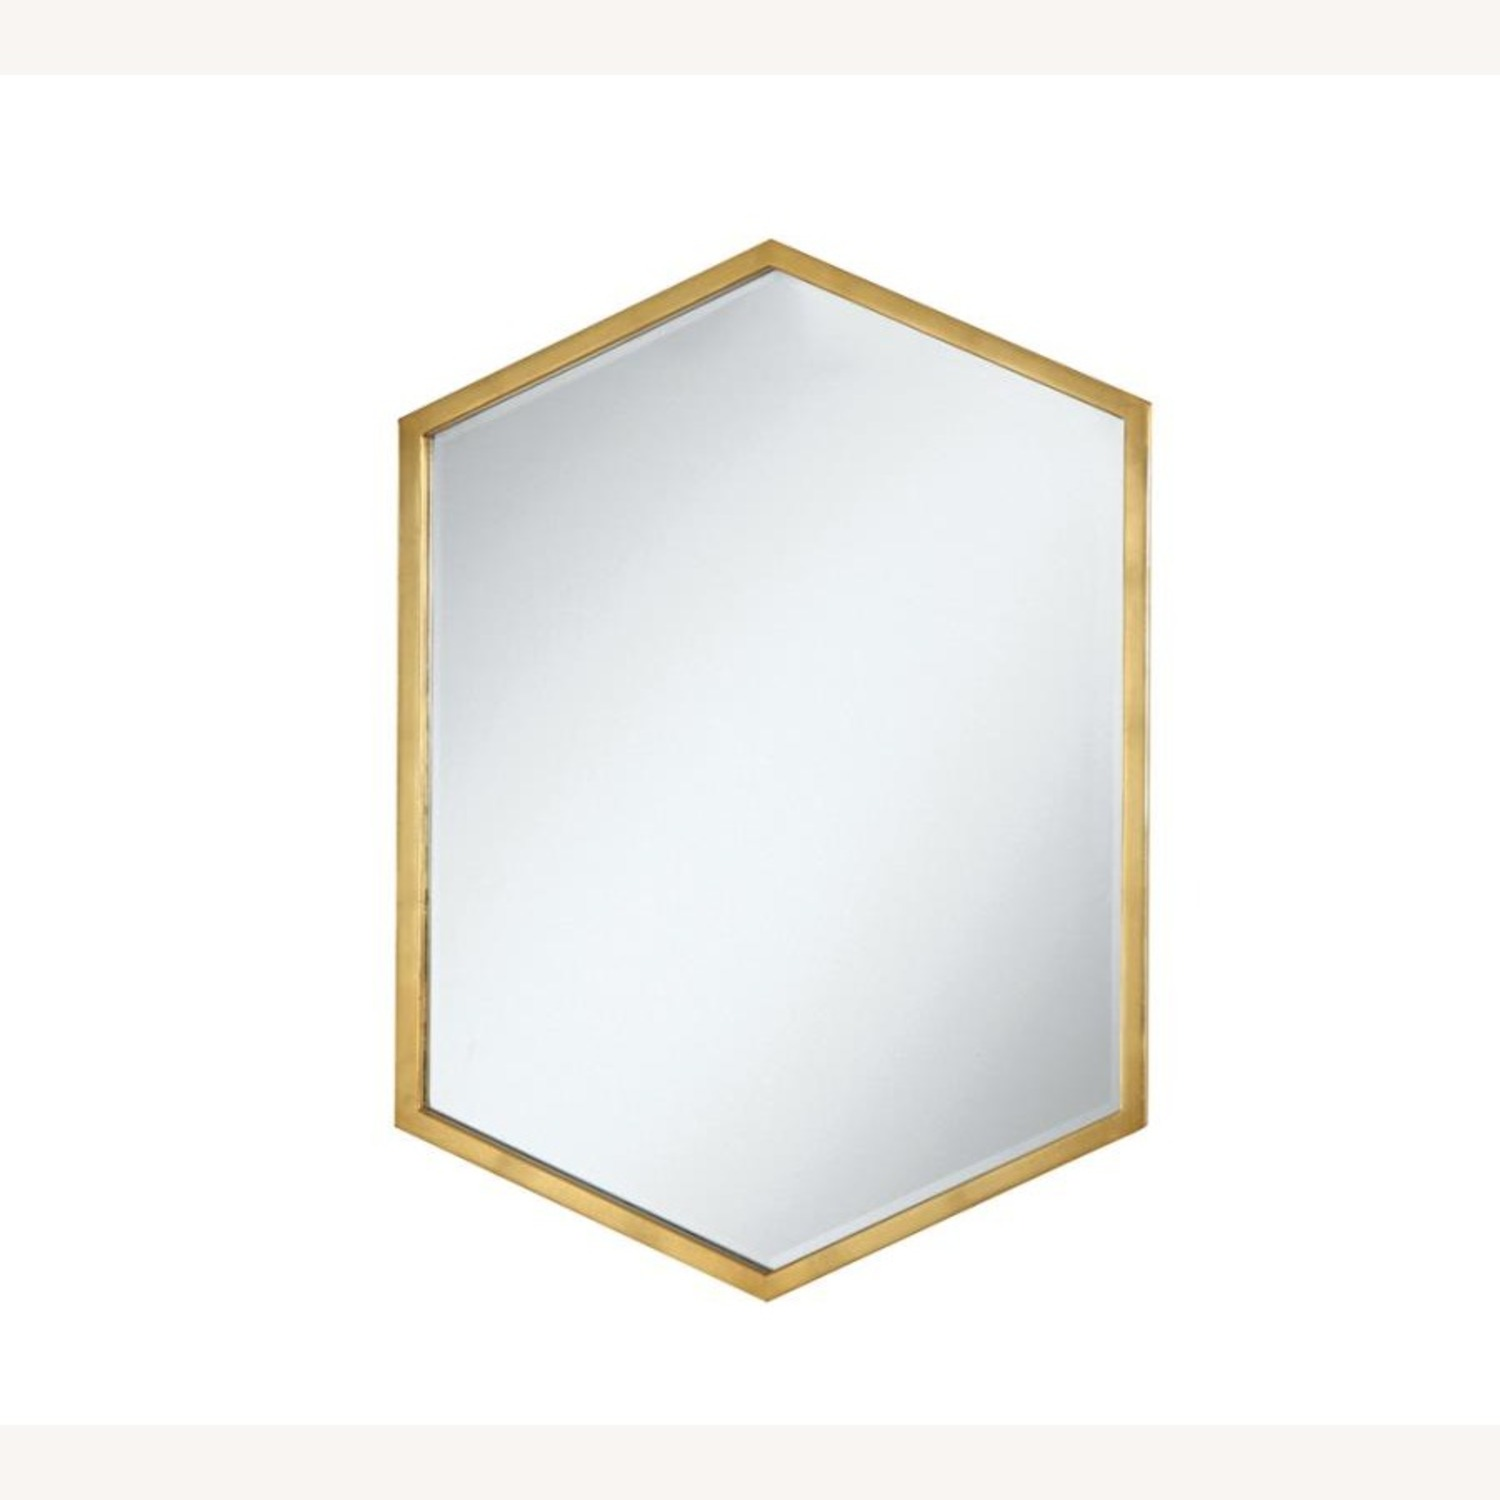 Mirror In Matte Gold Hexagon-Shaped Frame Finish - image-0